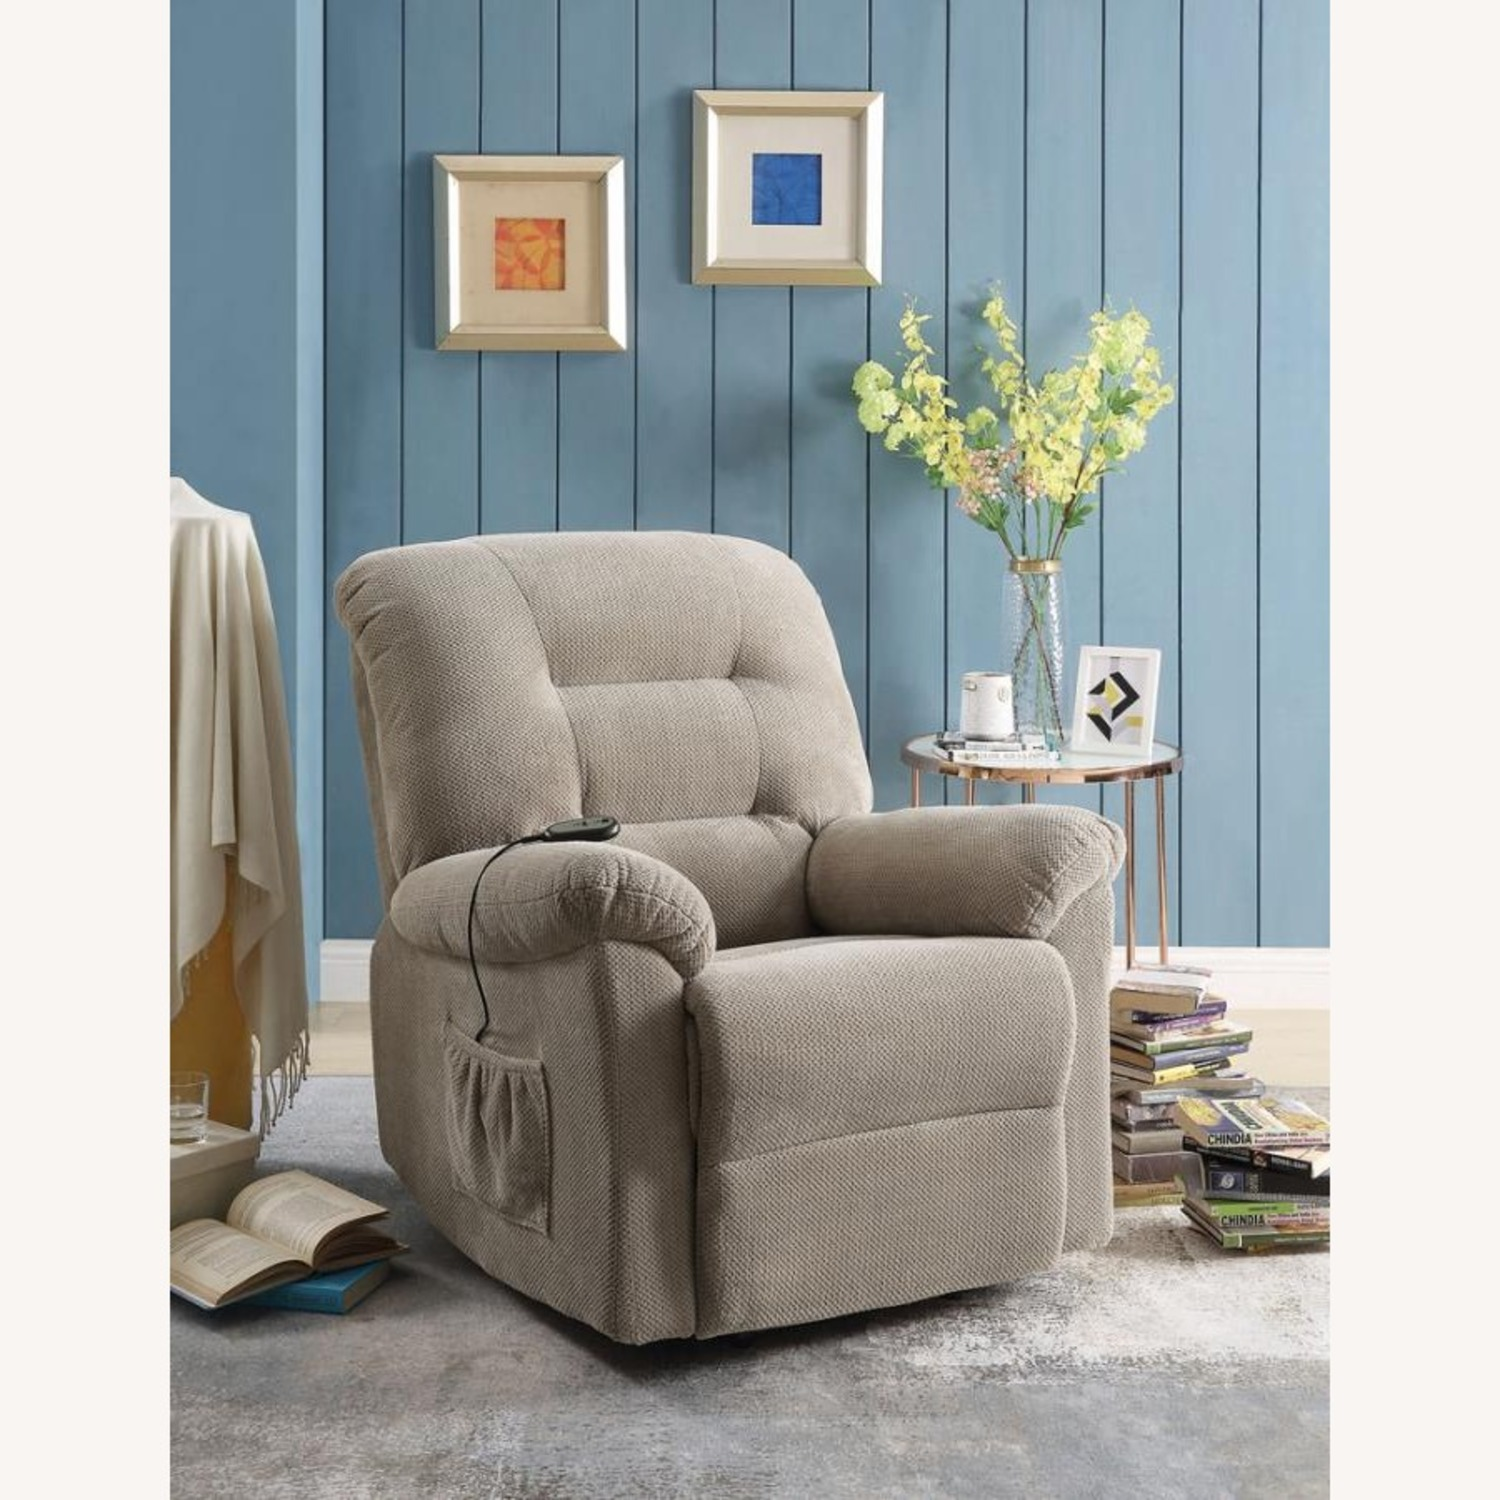 Power Lift Recliner In Beige Chenille Fabric - image-7